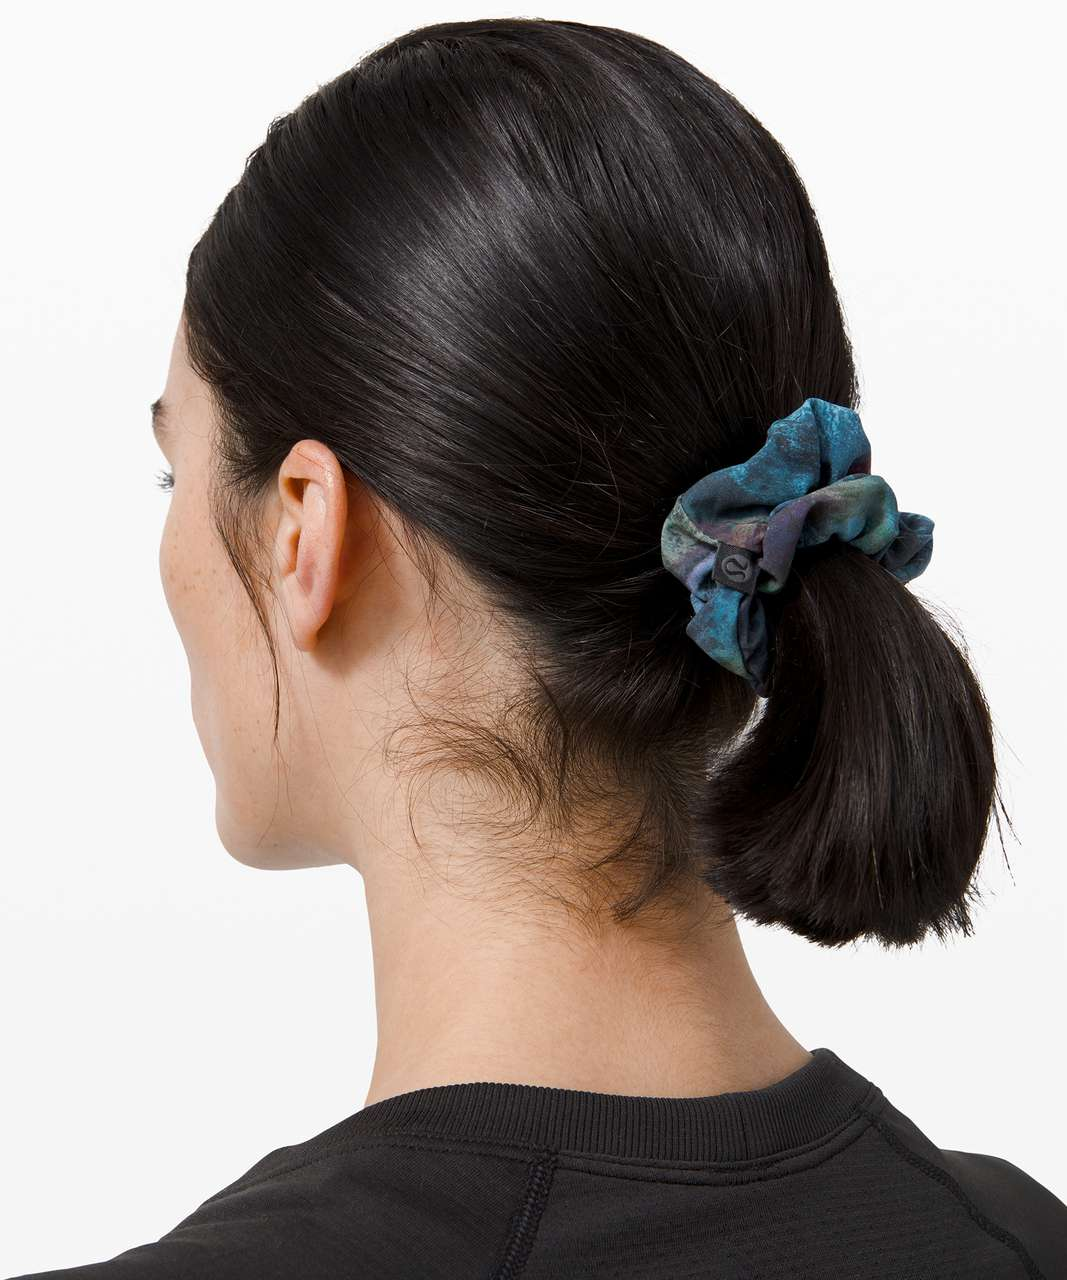 Lululemon Uplifting Scrunchie - Cosmic Shift Multi